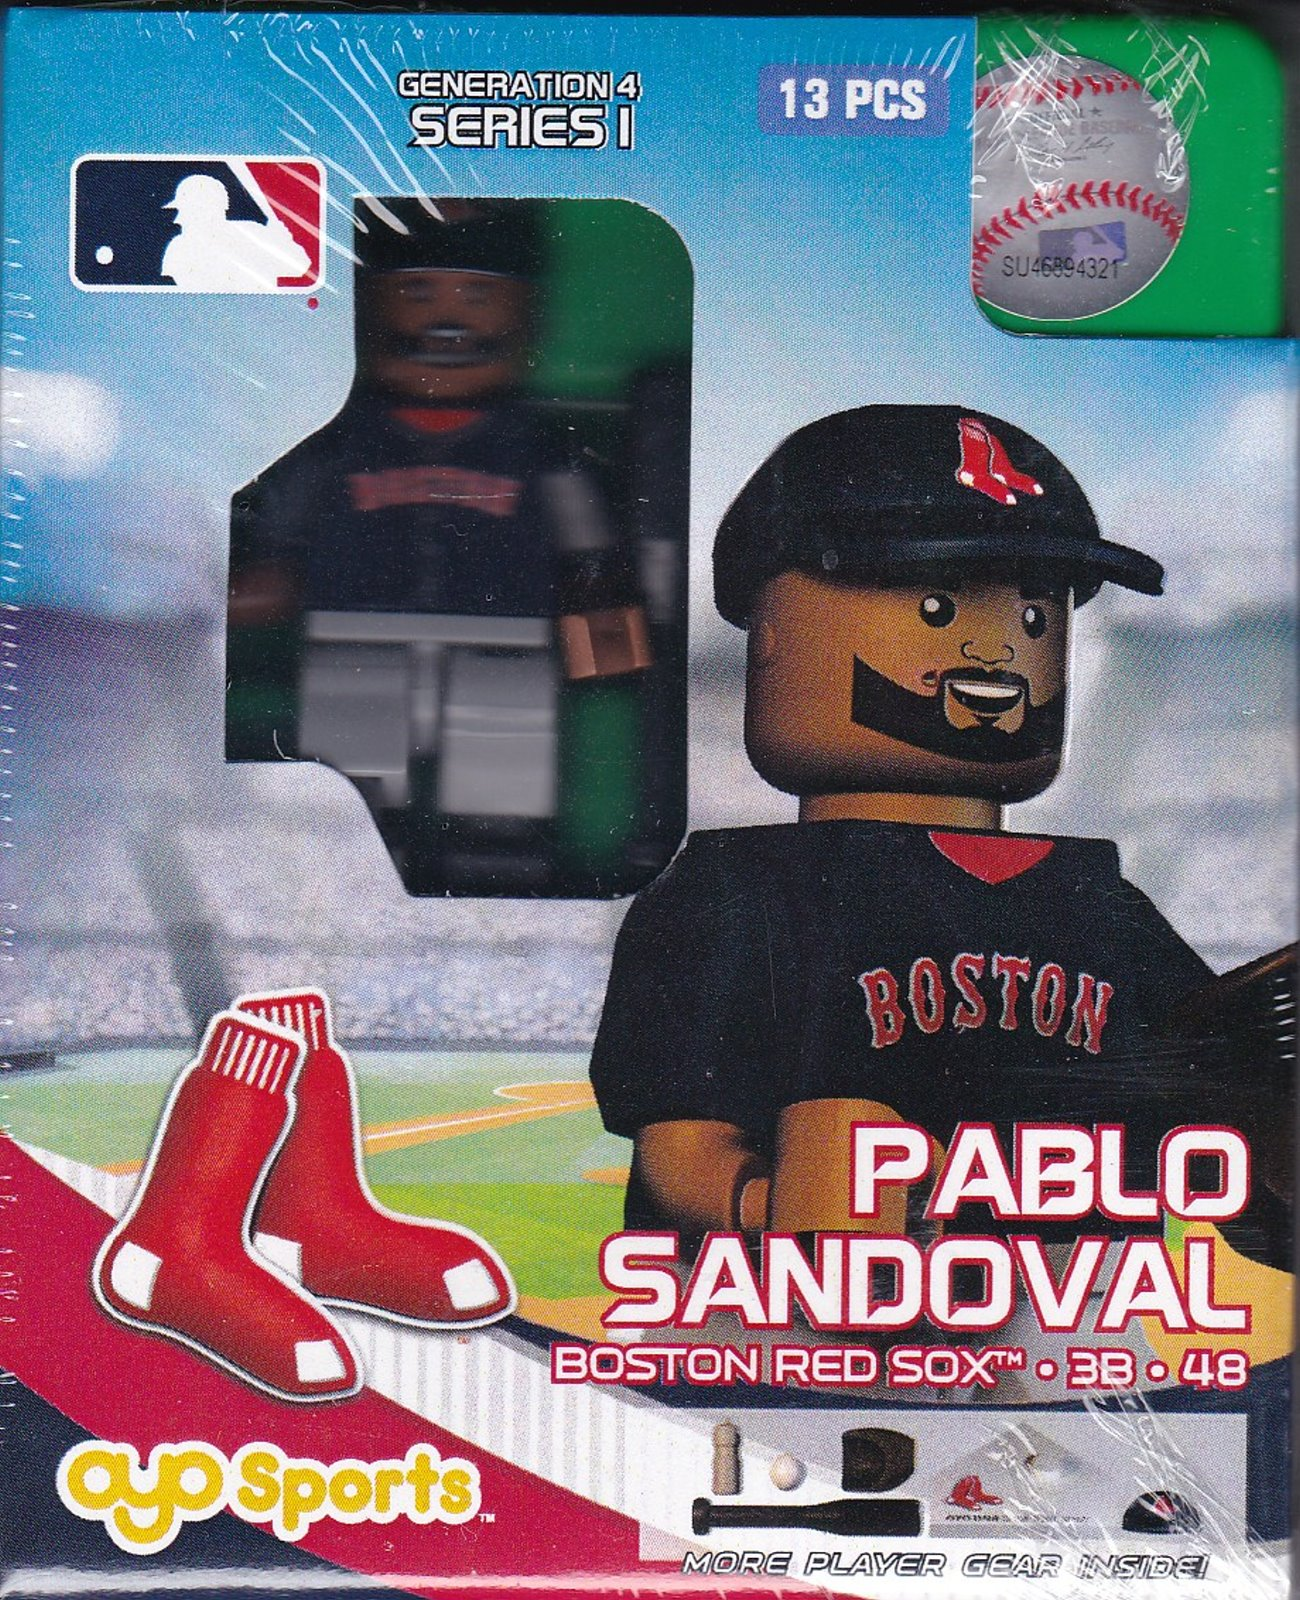 Pablo Sandoval OYO Baseball figure Generation 4 Series 1 Boston Red Sox